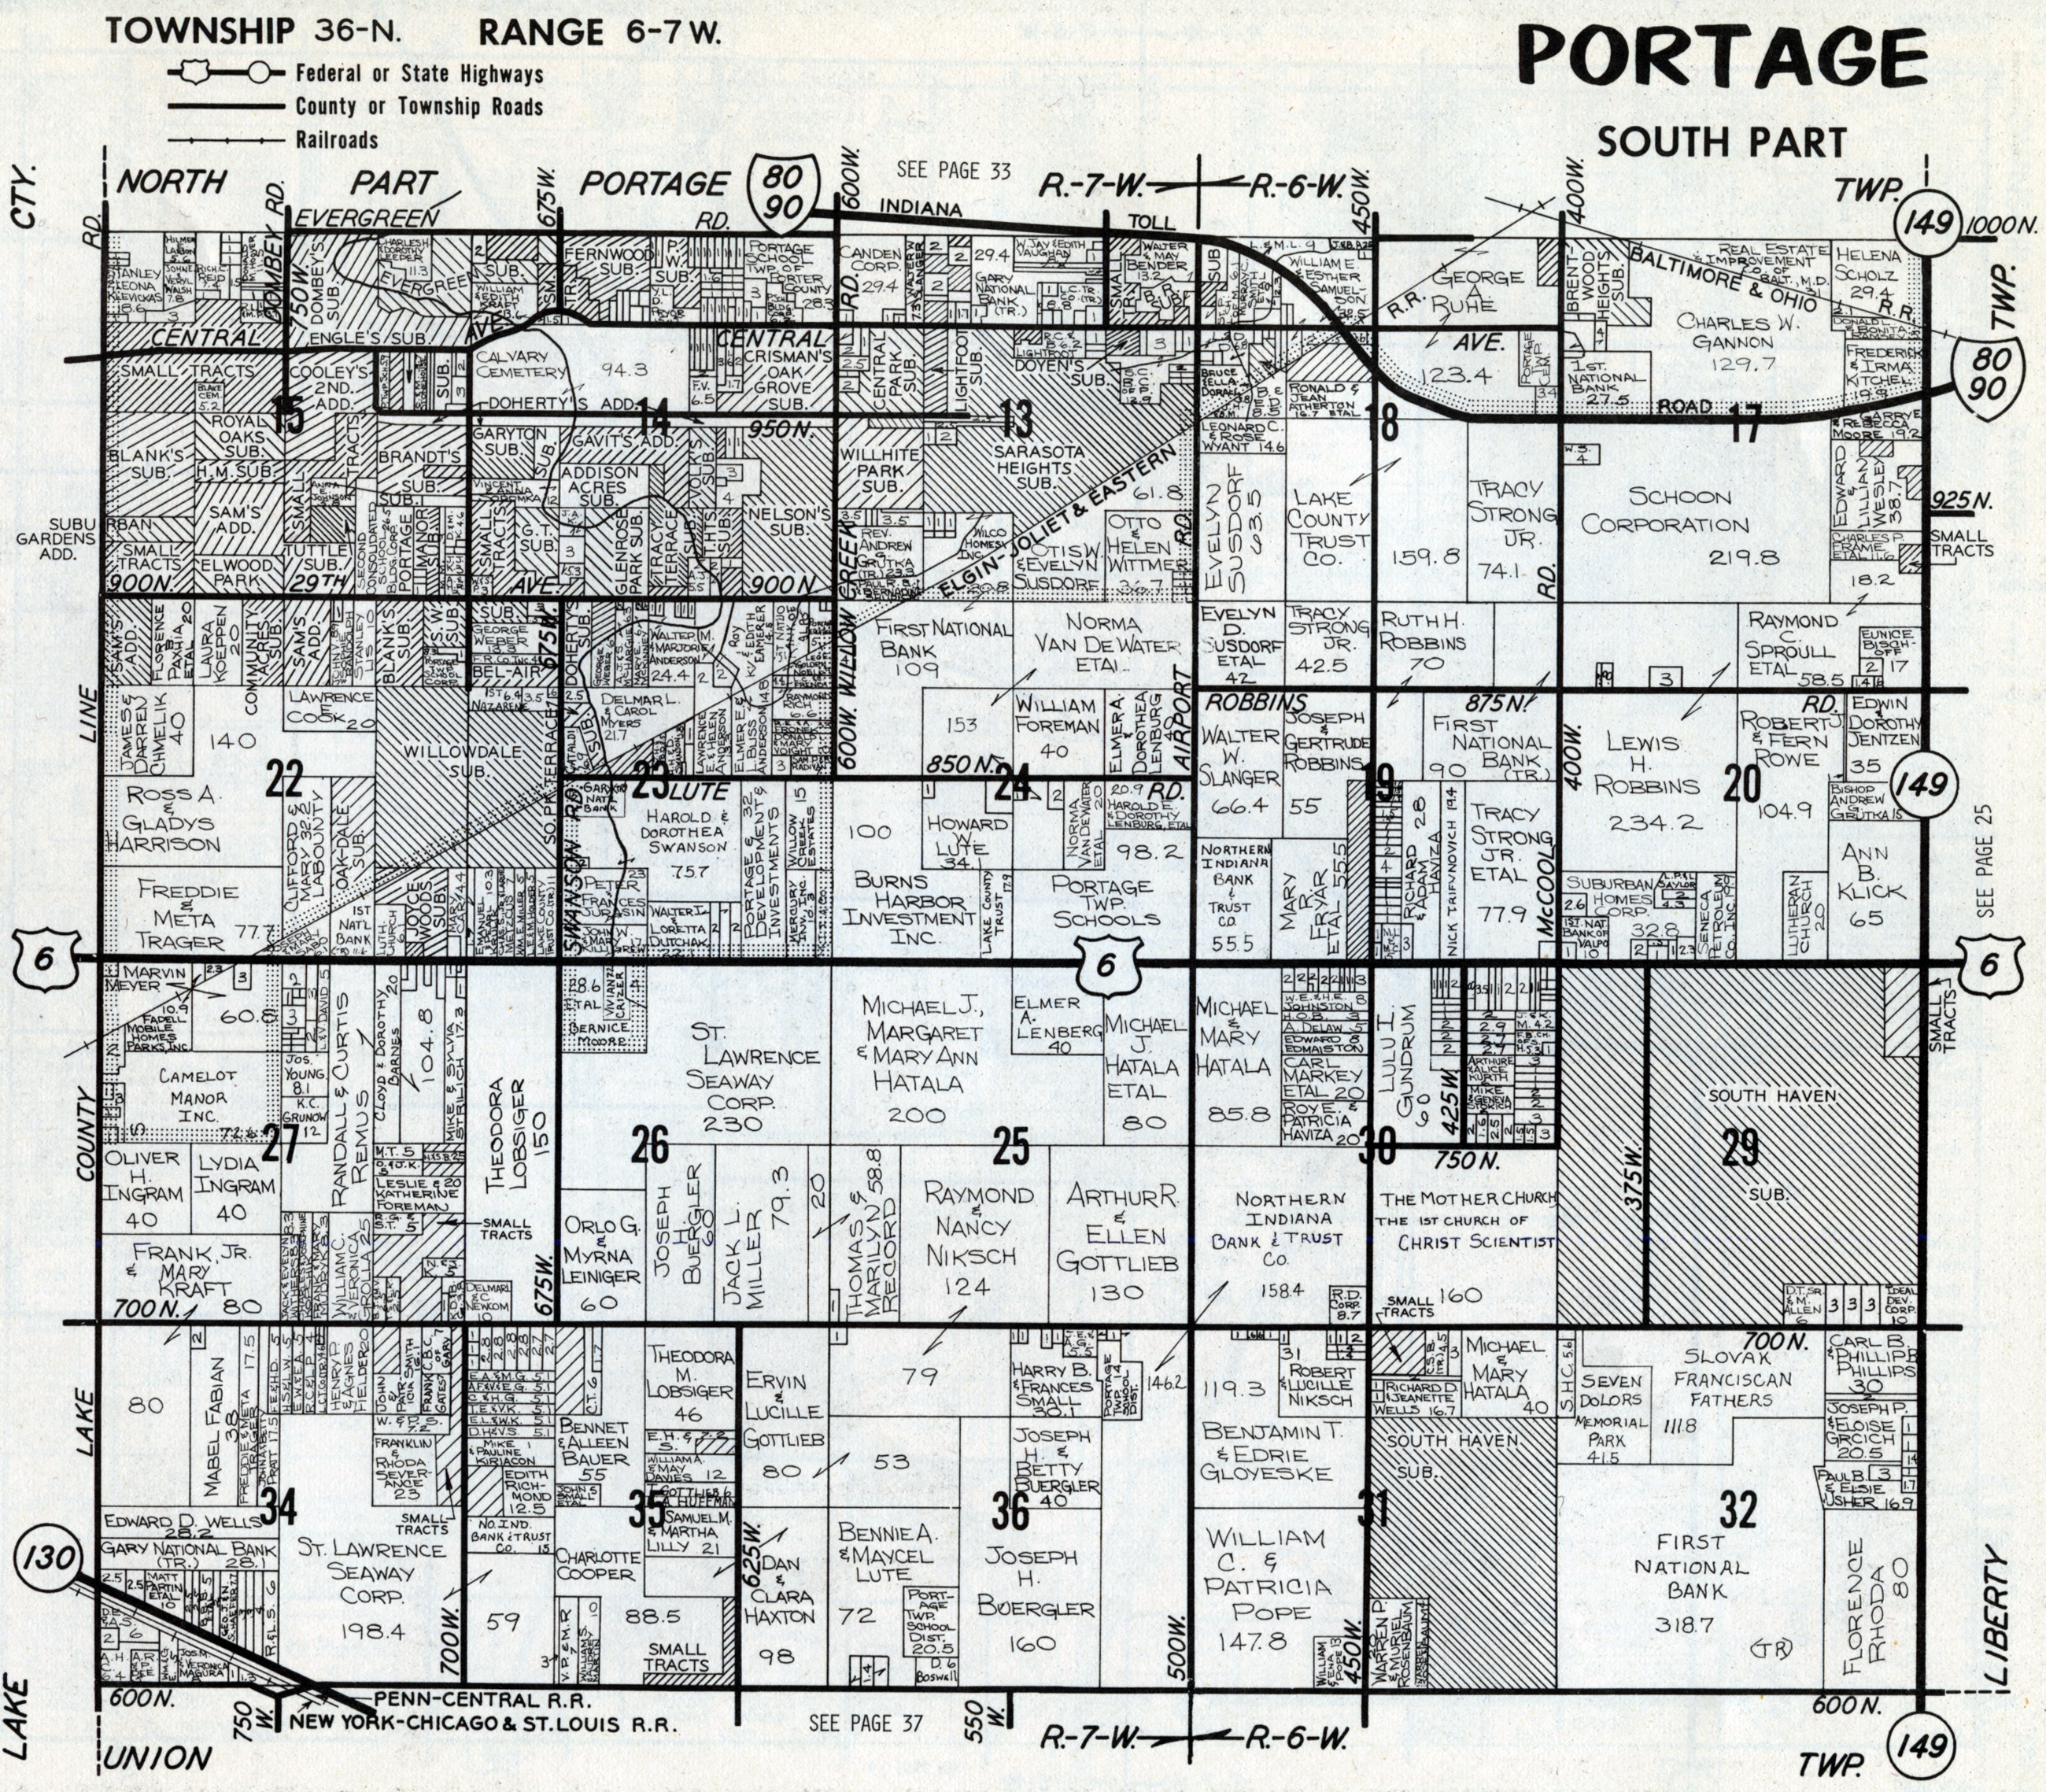 Porter County Indiana Genweb Township Plat Maps 1974